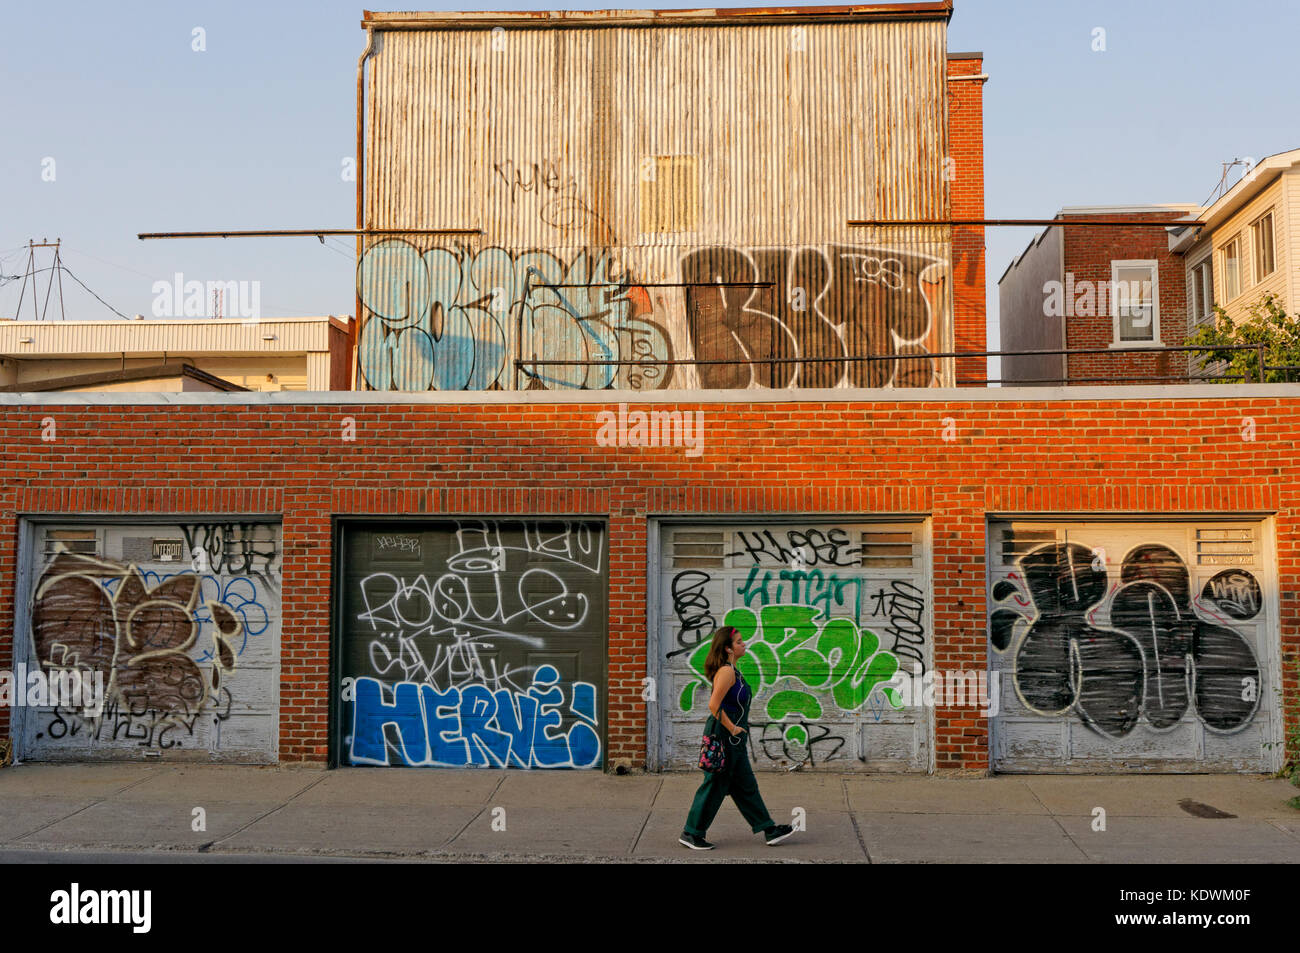 Young woman wearing headphones walking past defaced garage doors and a building covered in urban graffiti and tags, - Stock Image